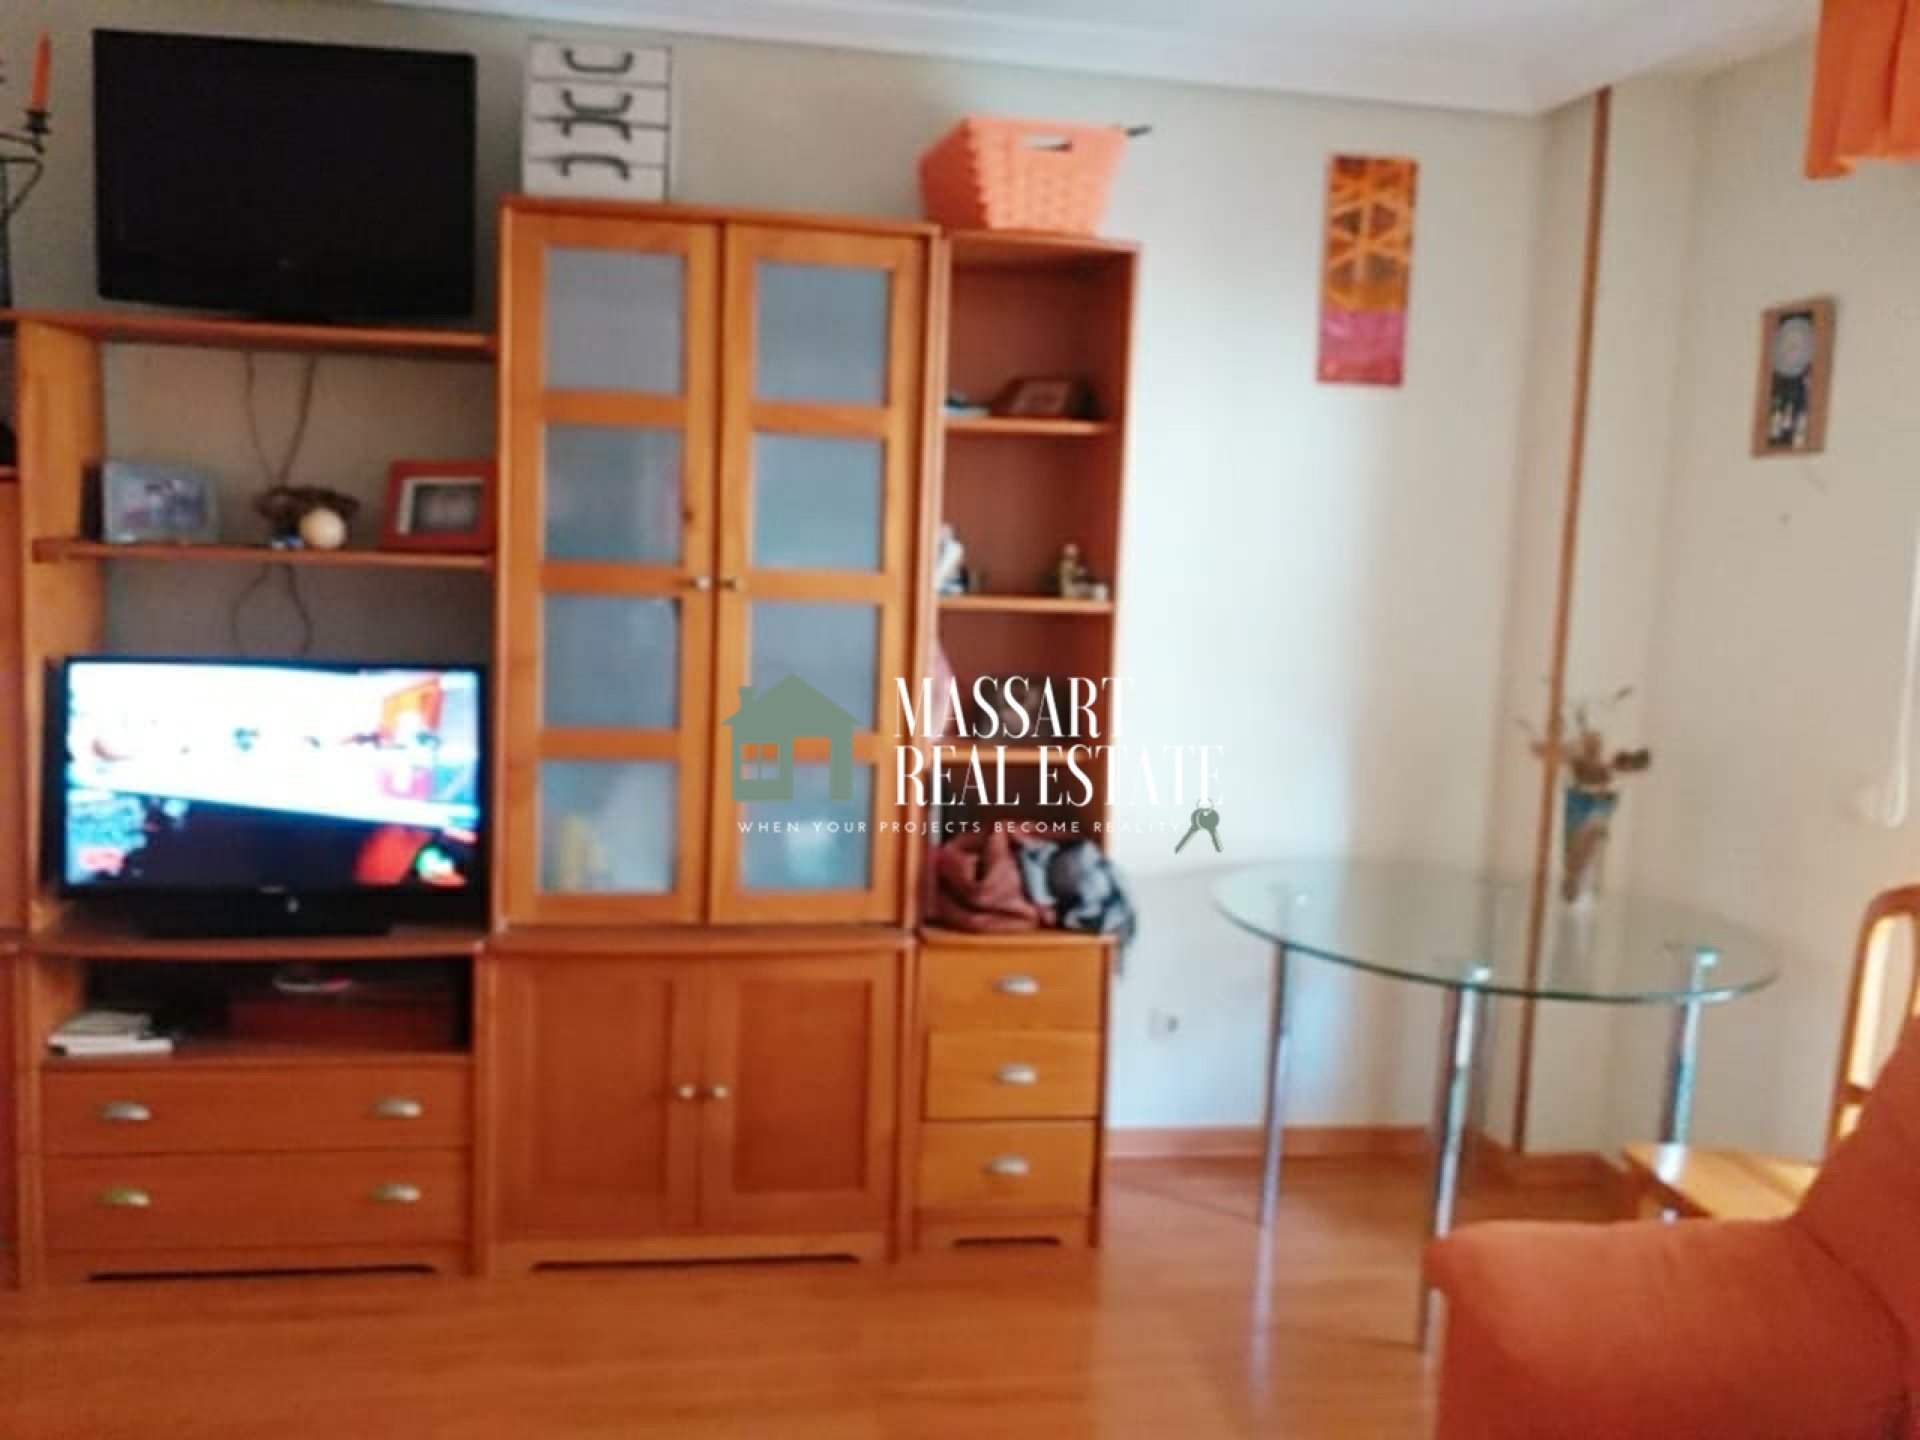 For sale in Los Cristianos, 93 m2 apartment characterized by its complete wooden furniture.